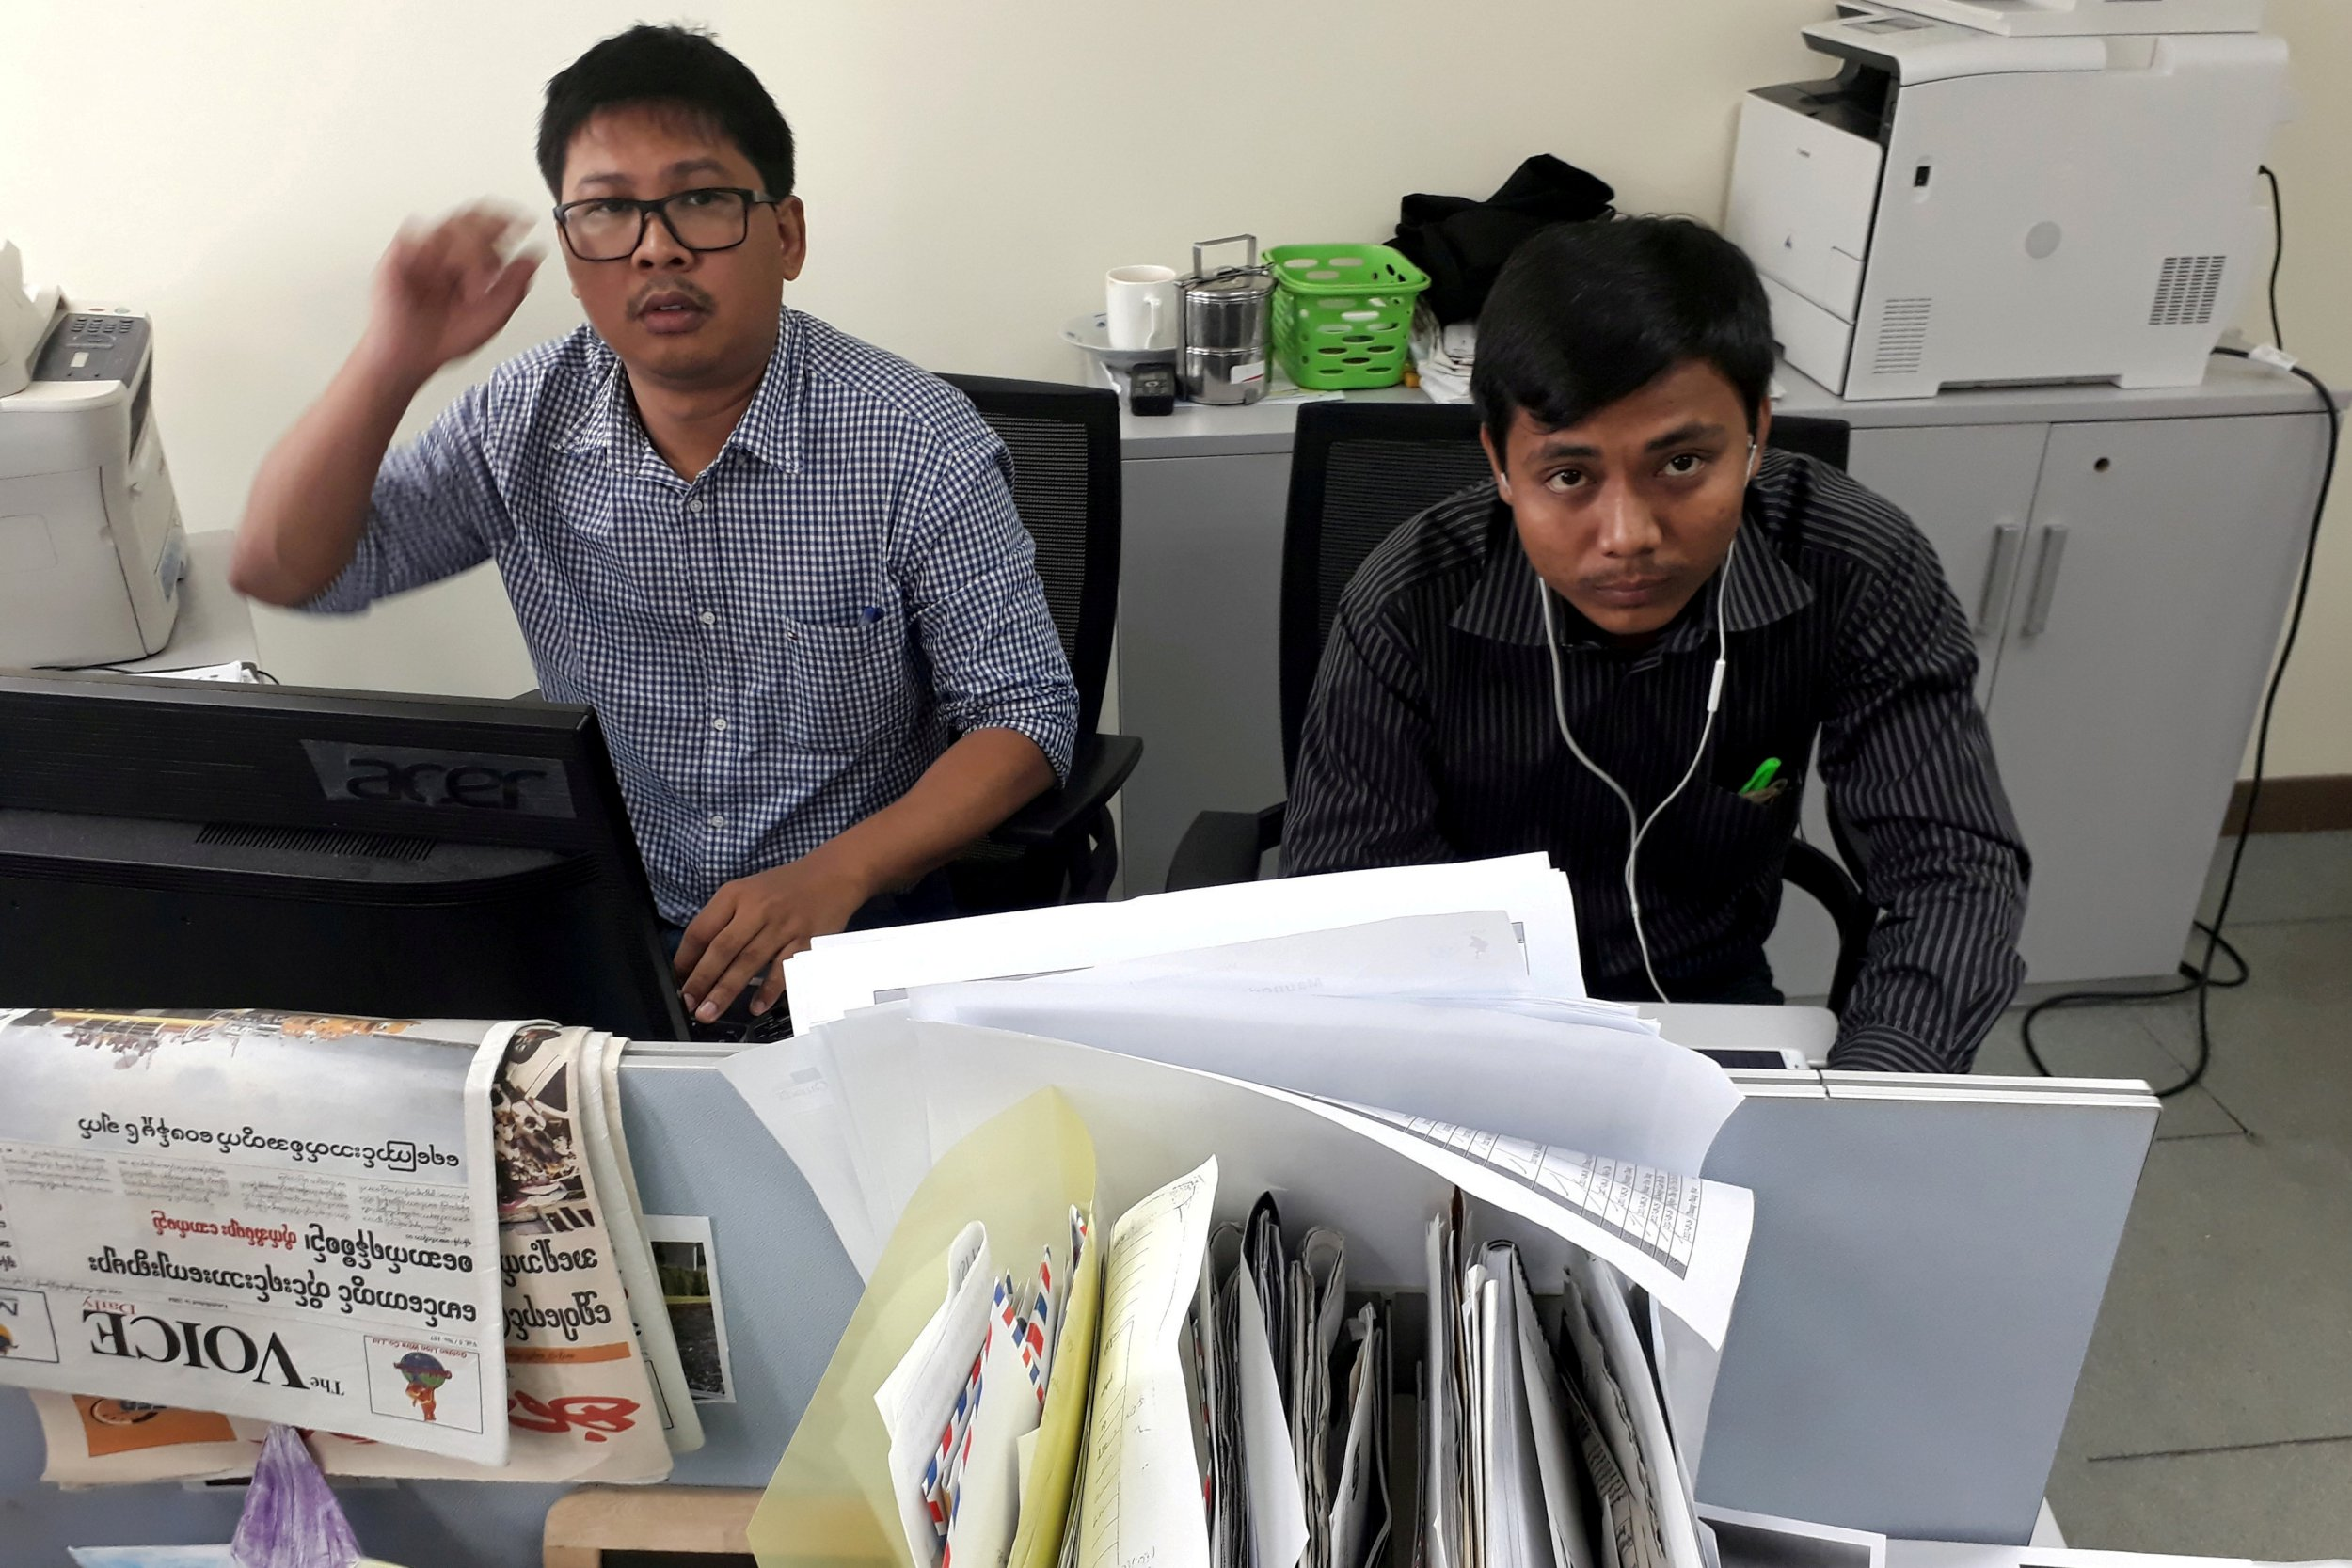 FILE PHOTO: Reuters journalists Wa Lone (L) and Kyaw Soe Oo, who are based in Myanmar, pose for a picture at the Reuters office in Yangon, Myanmar December 11, 2017. To match Special Report MYANMAR-JOURNALISTS/TRIAL REUTERS/Antoni Slodkowski/File Photo